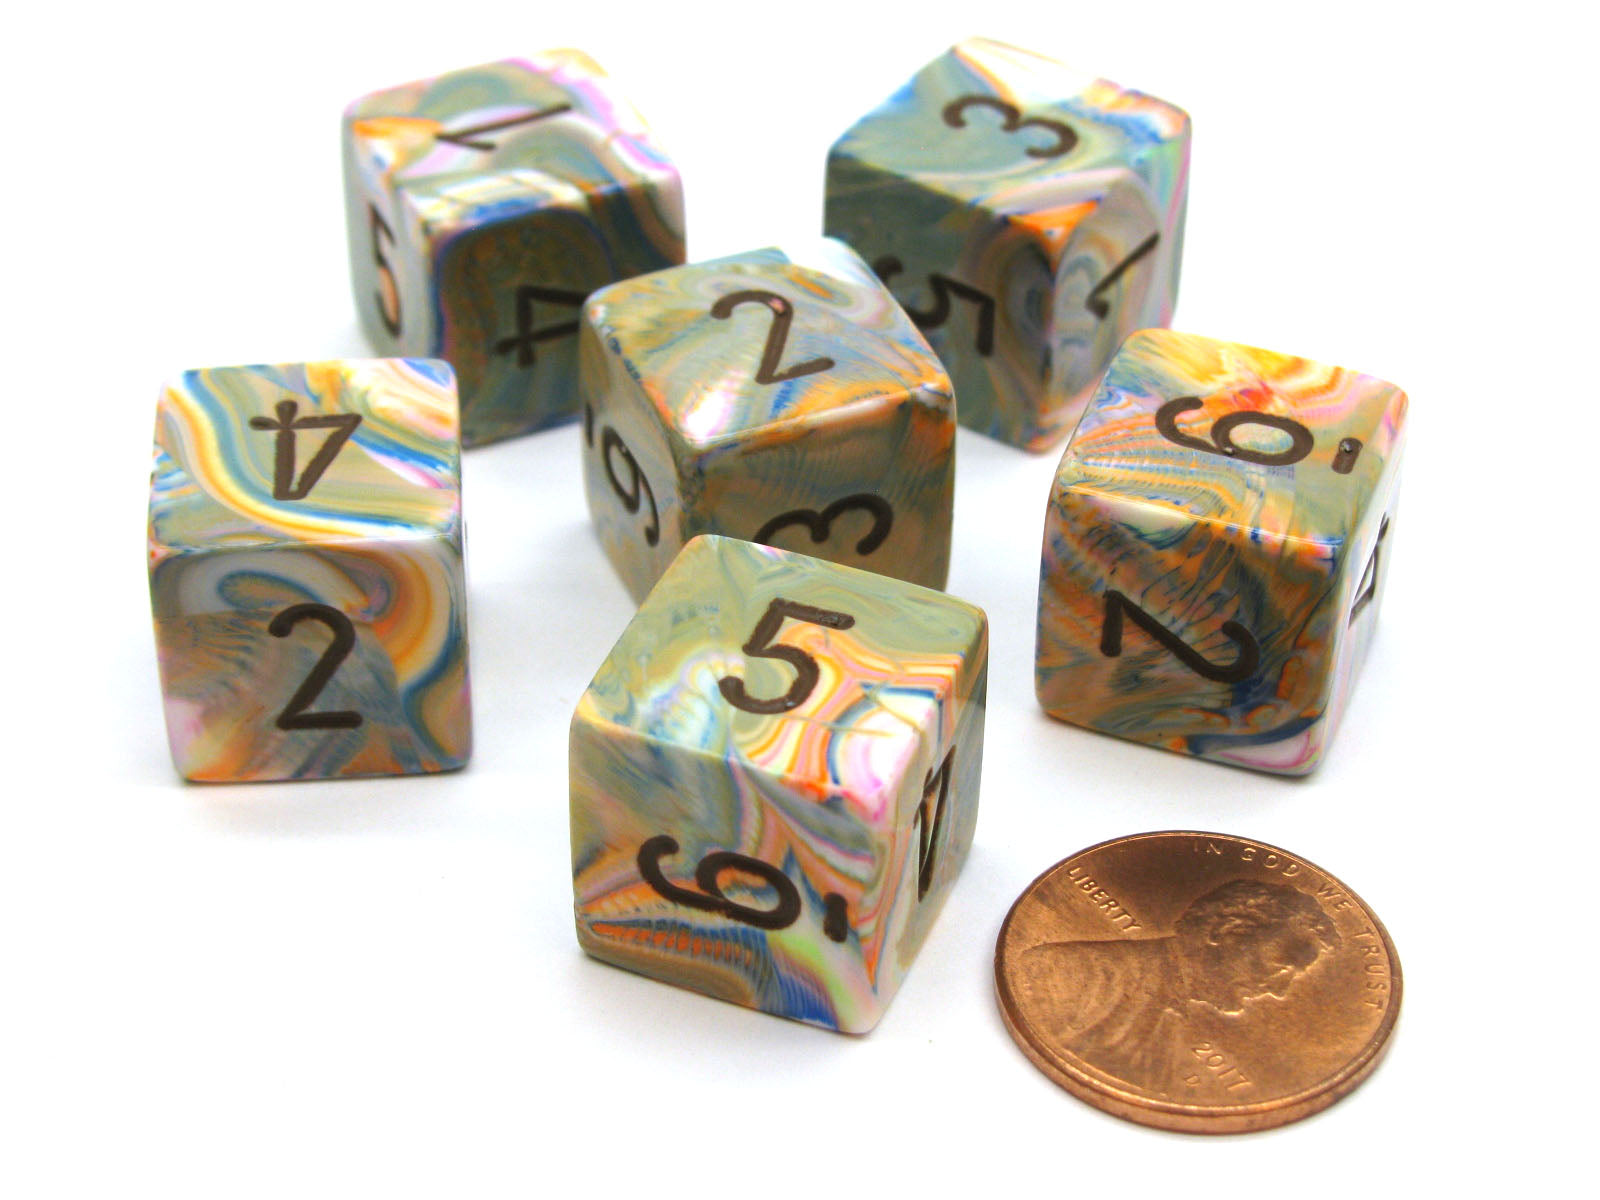 Festive 15mm 6-Sided D6 Numbered Chessex Dice, 6 Pieces - Vibrant with Brown